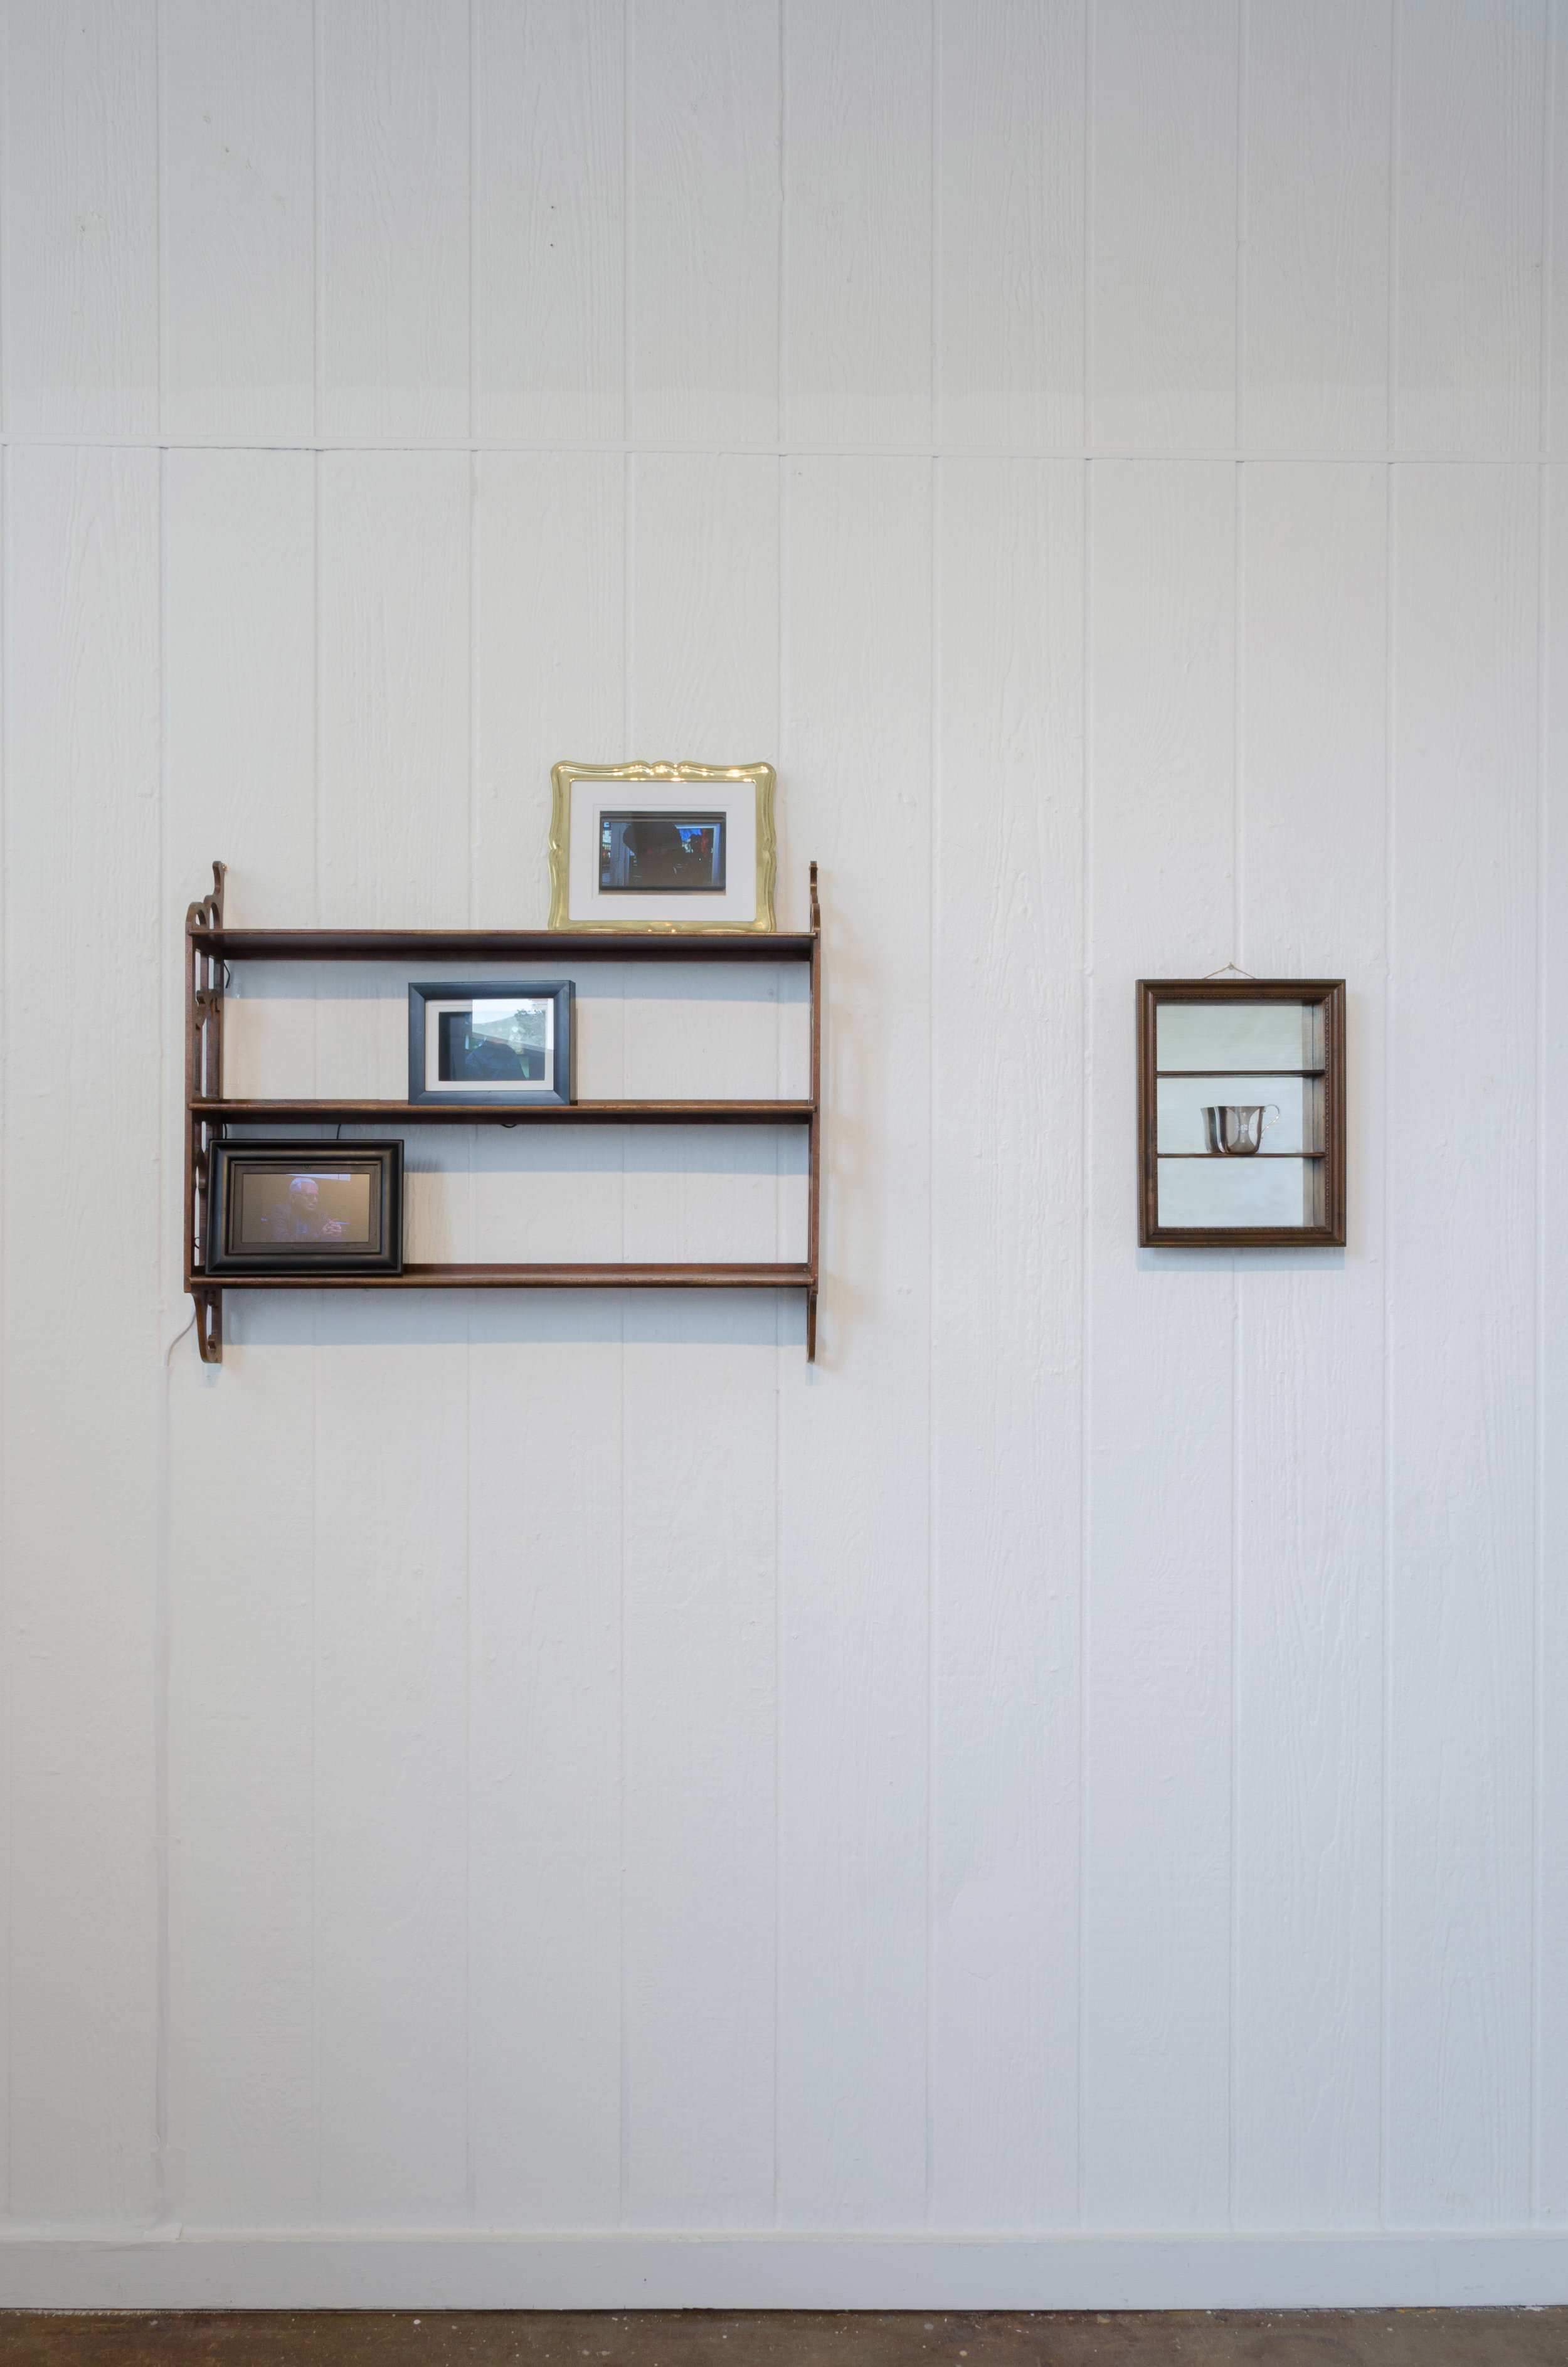 Installation View from origins at Toby's Gallery   (from left to right)  g-ma, legacy,  Point Reyes Station 2019